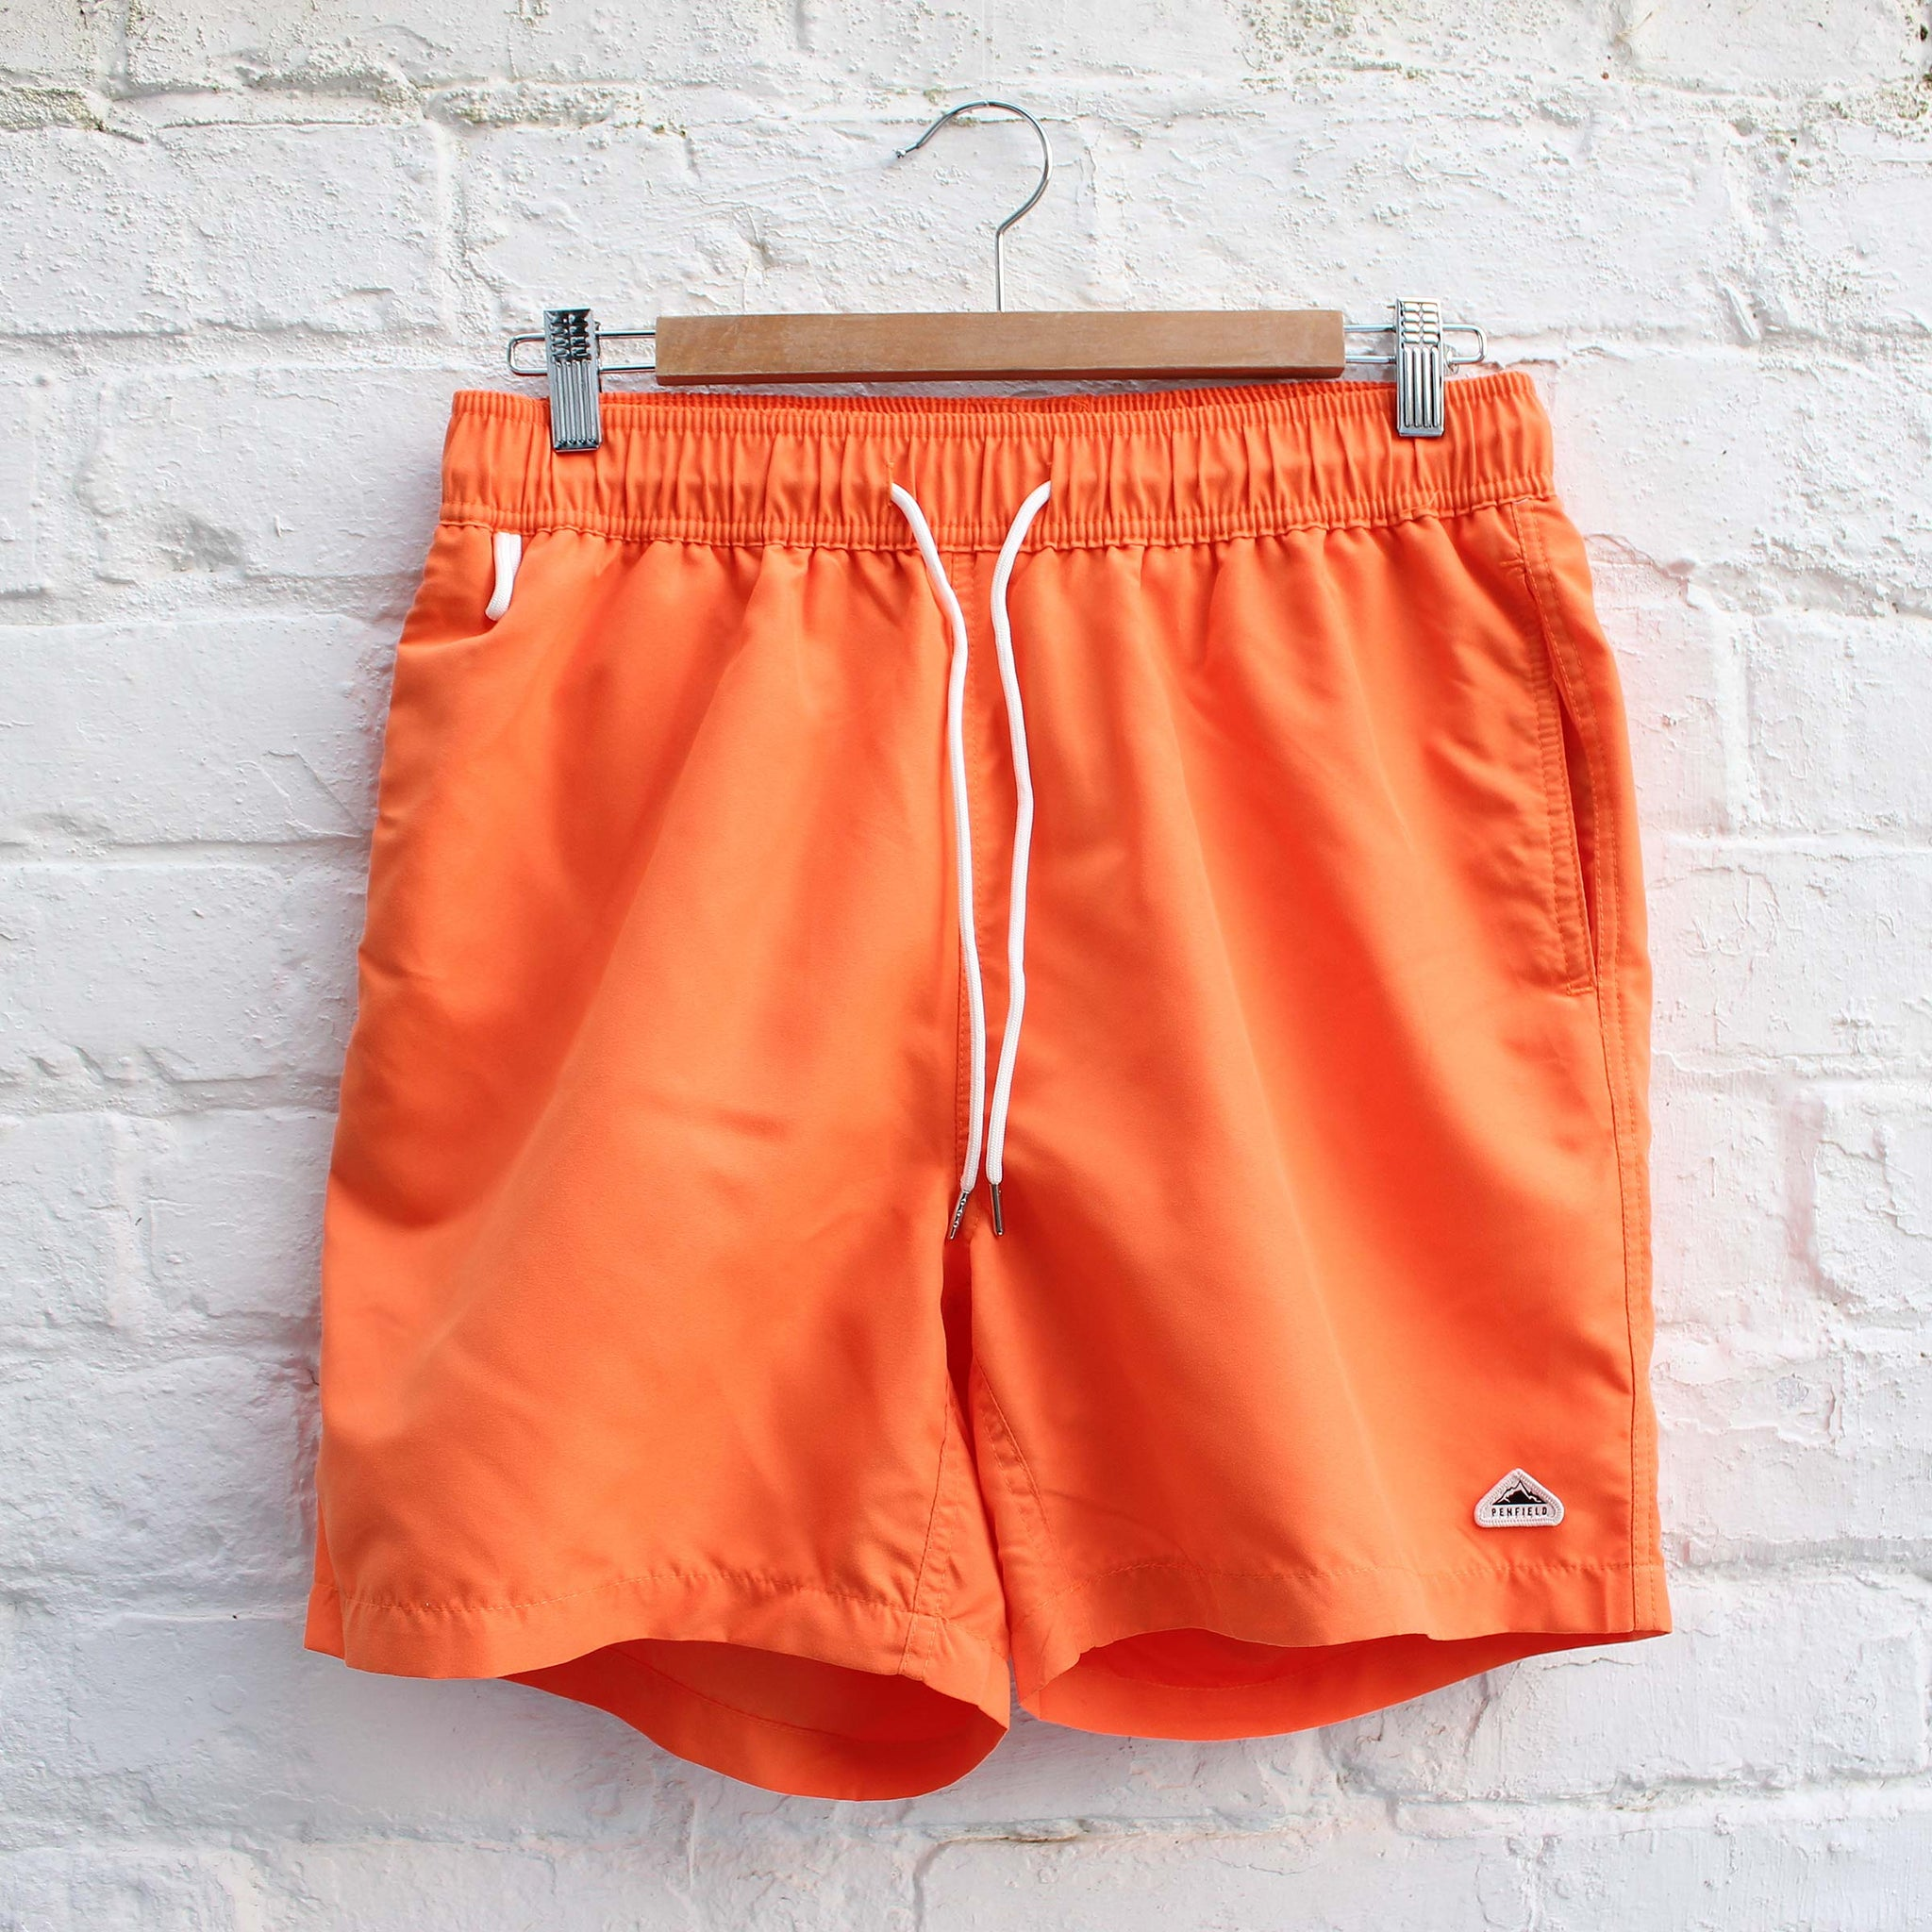 Penfield Seal Shorts - Orange